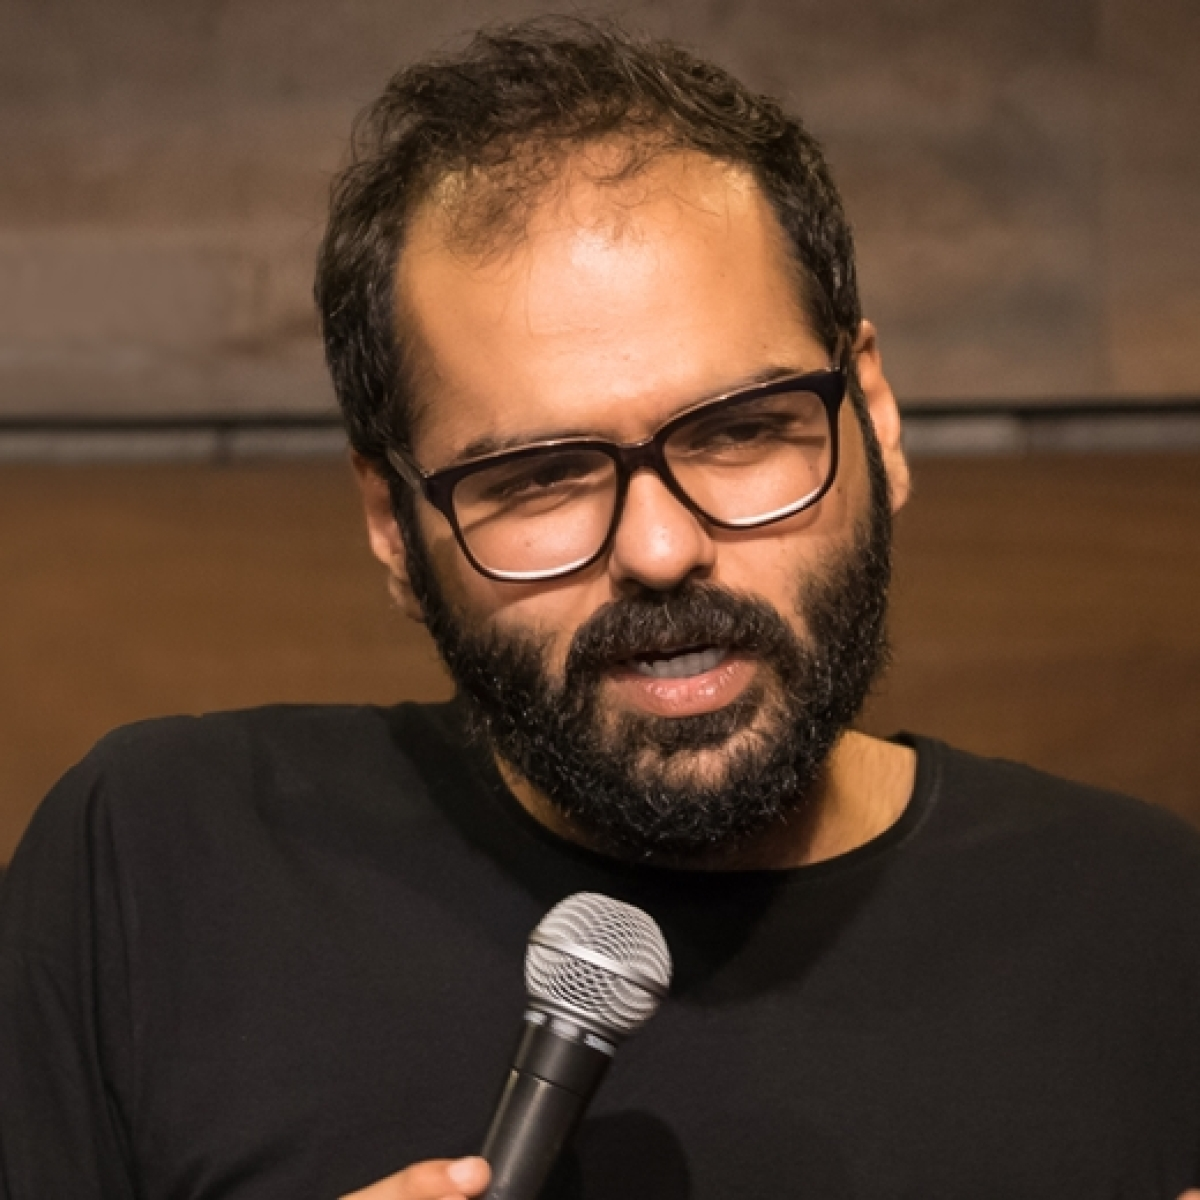 Kunal Kamra lauds Maha CM for 'transparency' amid COVID-19 after state recruits workforce from Kerala